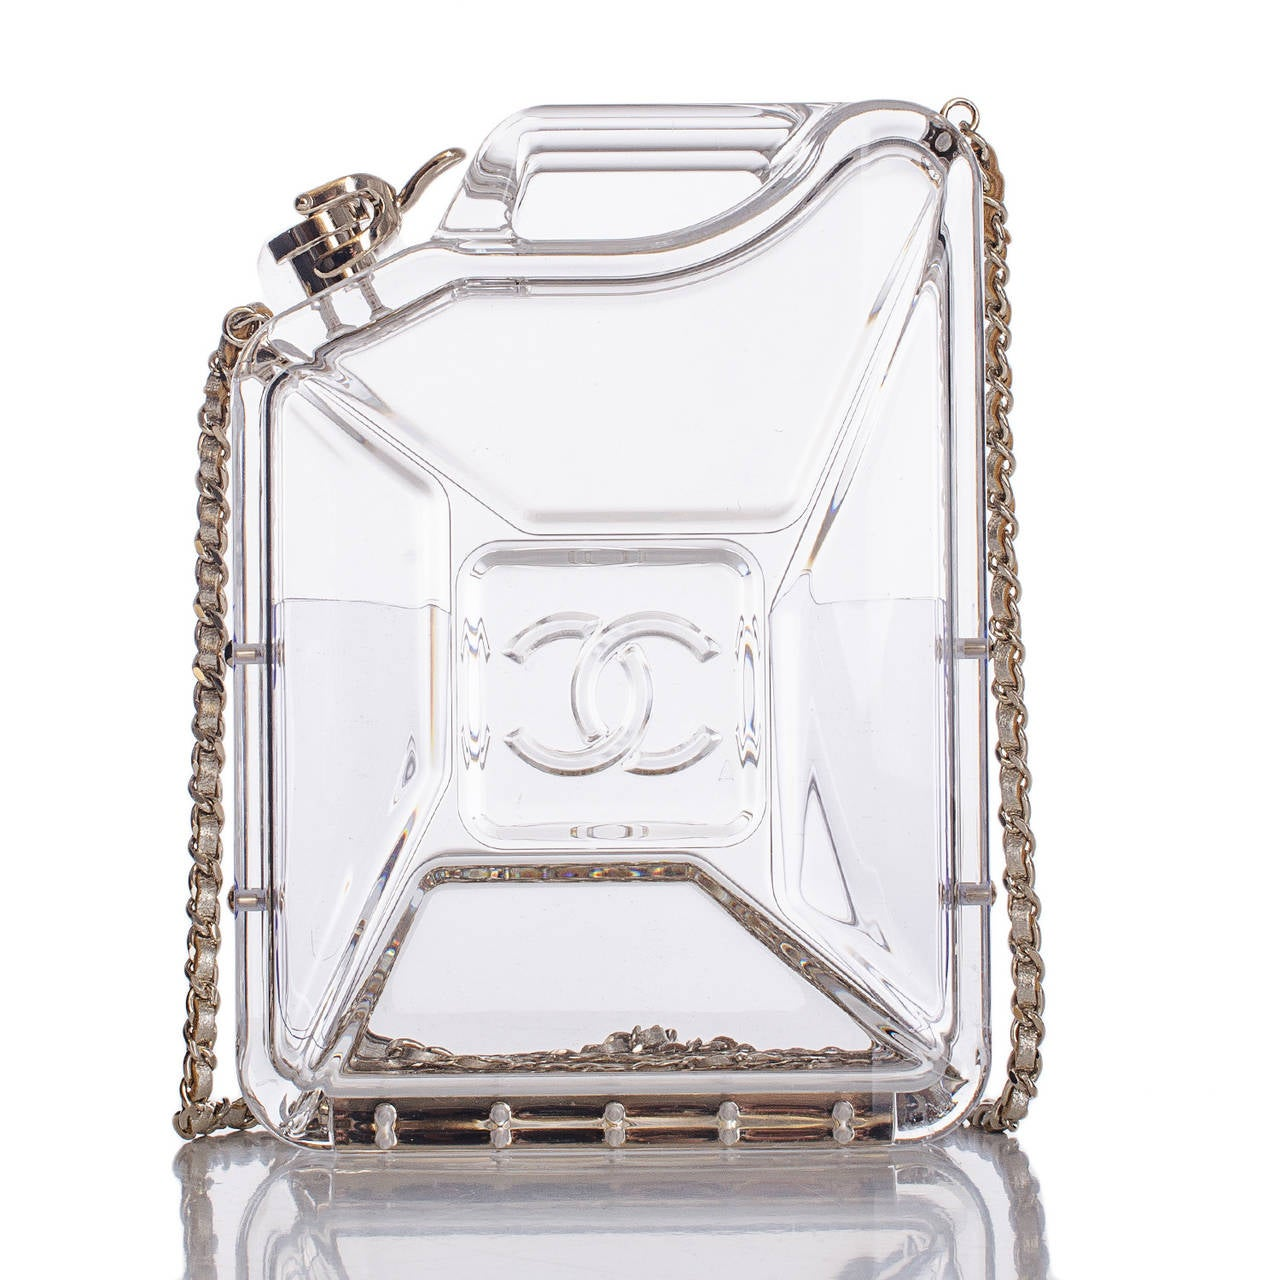 Chanel Dubai By Night Gas Tank Minaudiere Bag In New never worn Condition For Sale In New York, NY